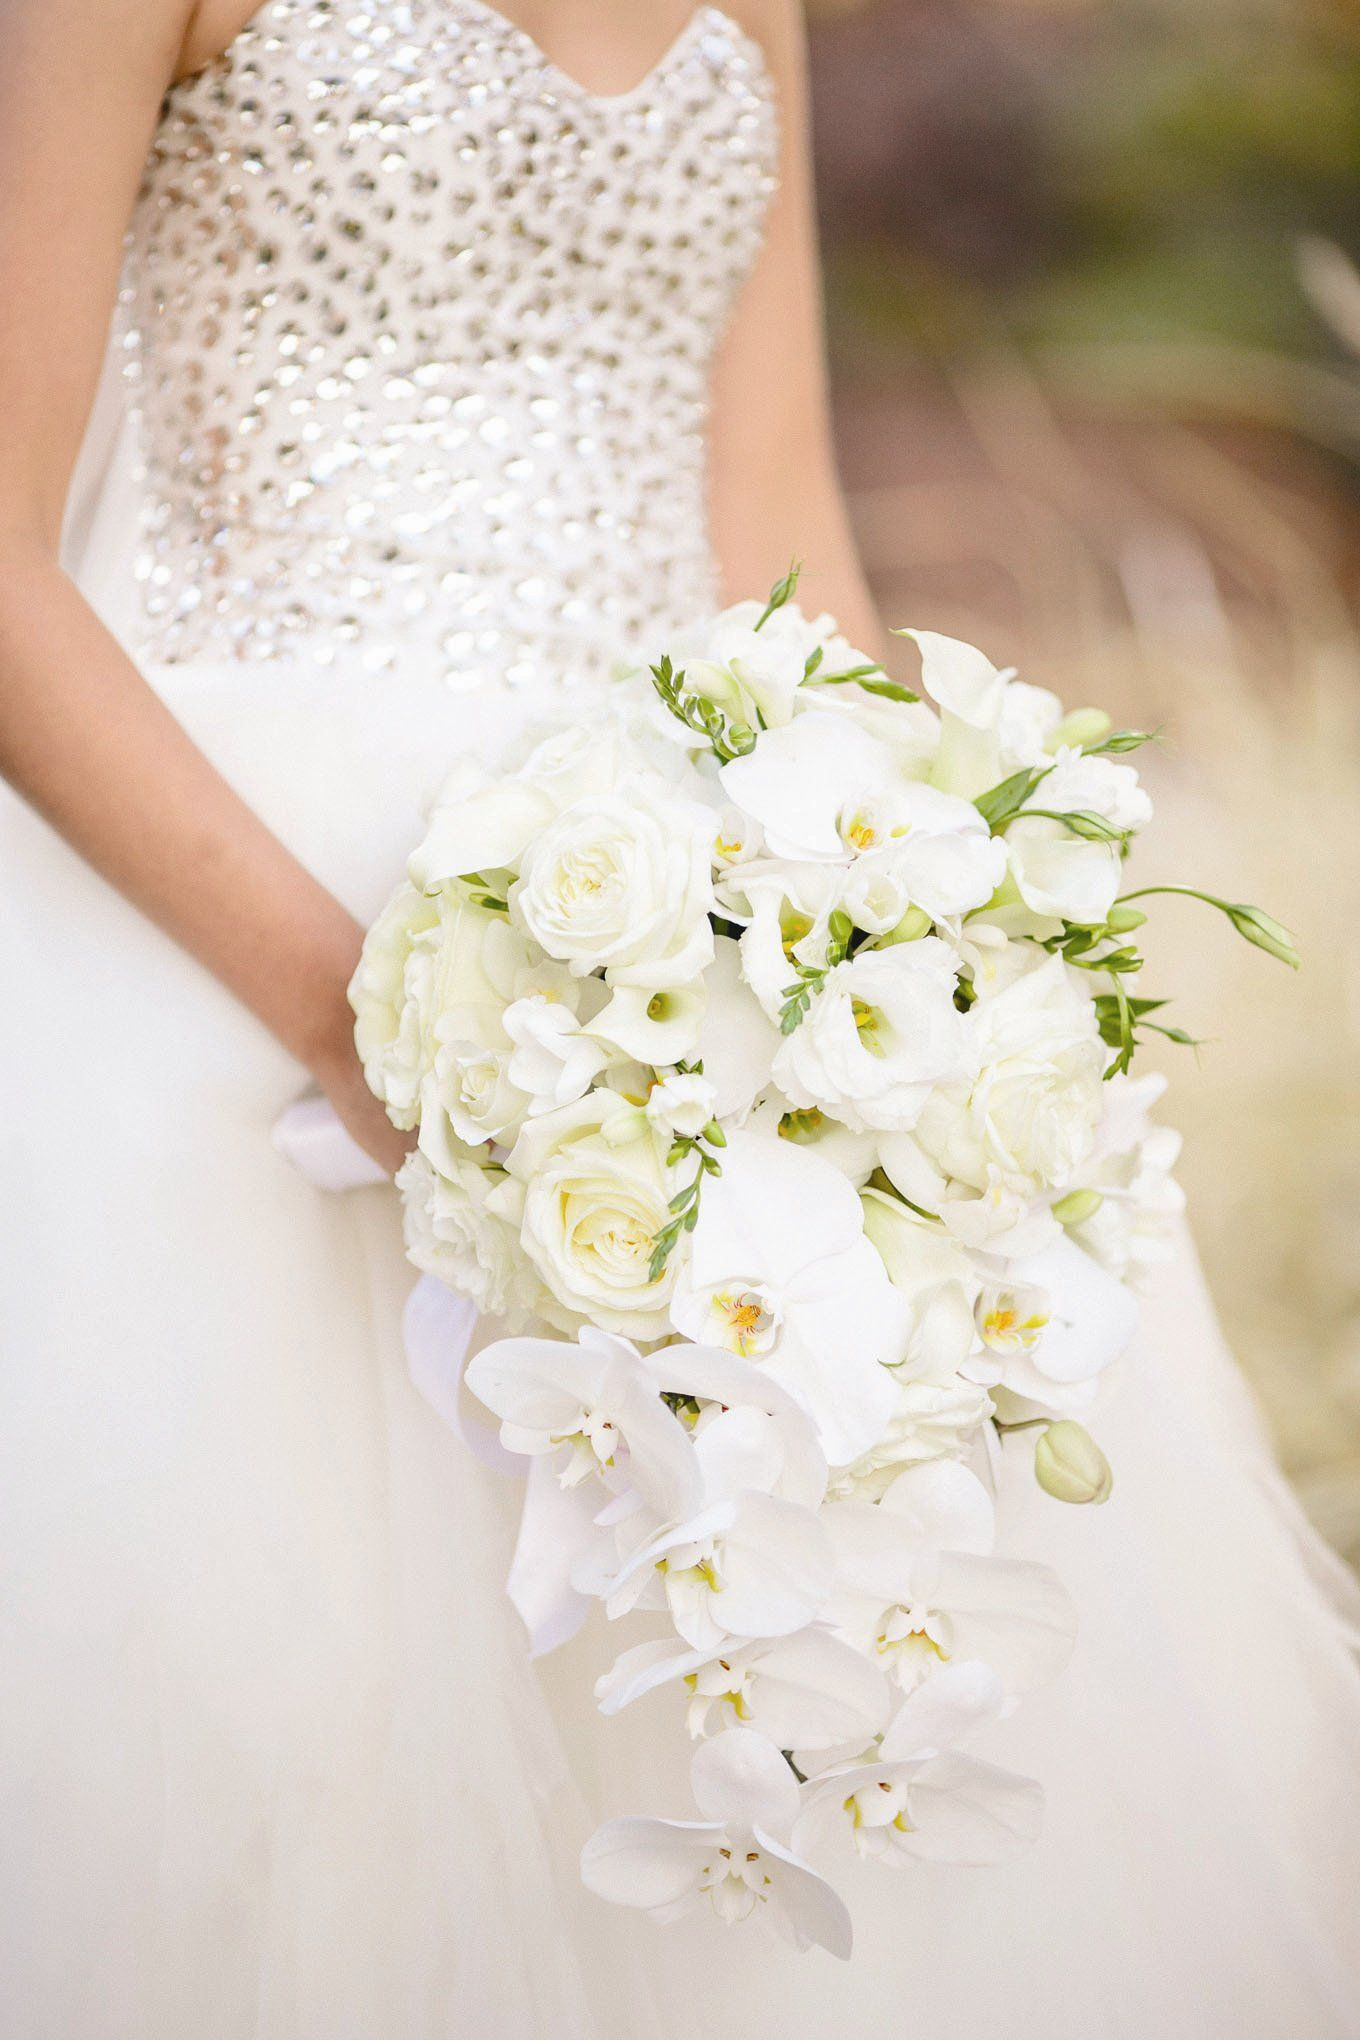 Kelly says she wanted something out of the ordinary so she chose a white cascade bridal bouquet mightylinksfo